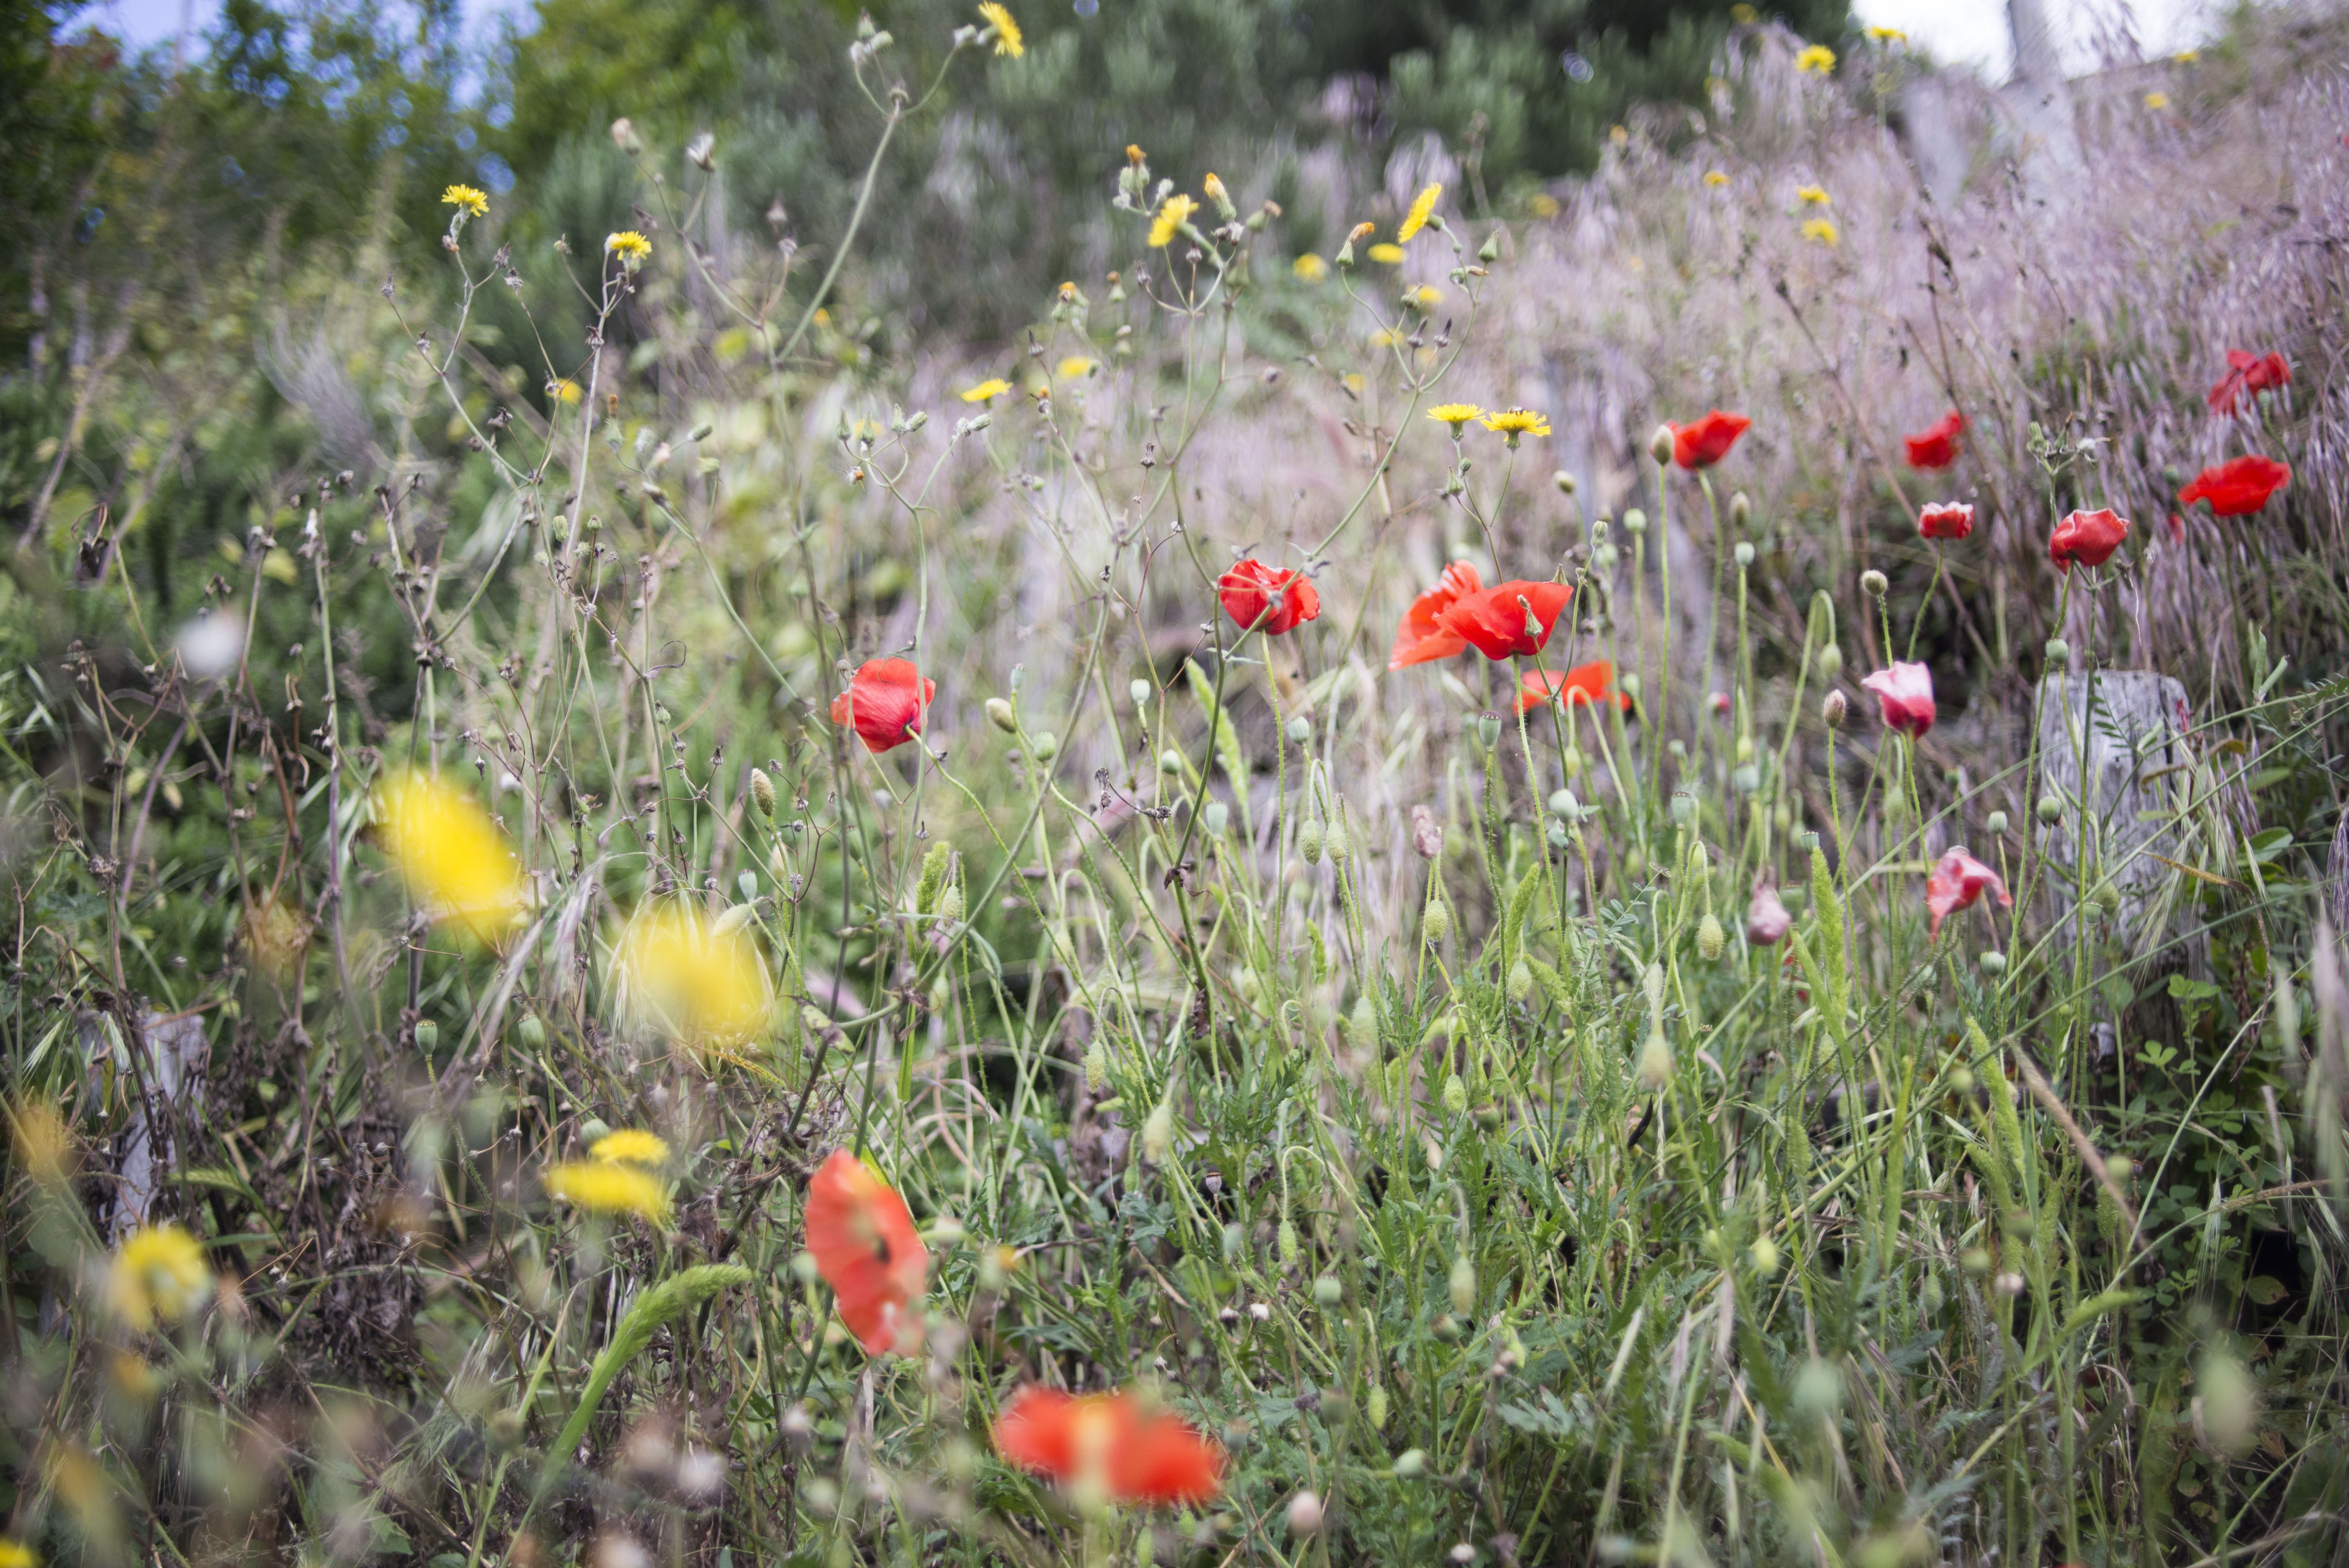 Wild yellow and red poppy flowers in countryside field in Spring, Pompeii